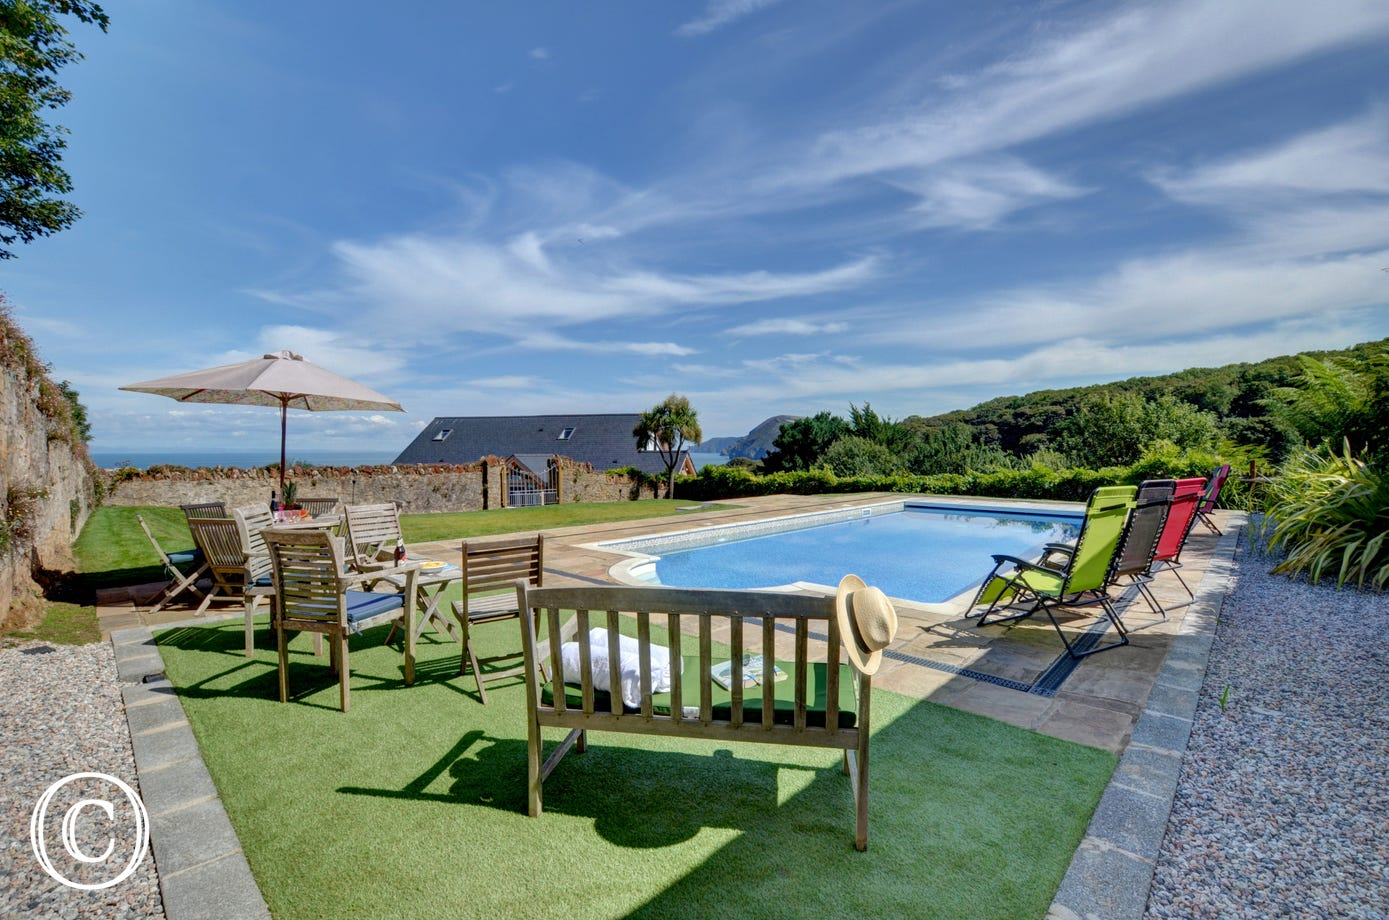 The beautiful swimming pool area with garden furniture